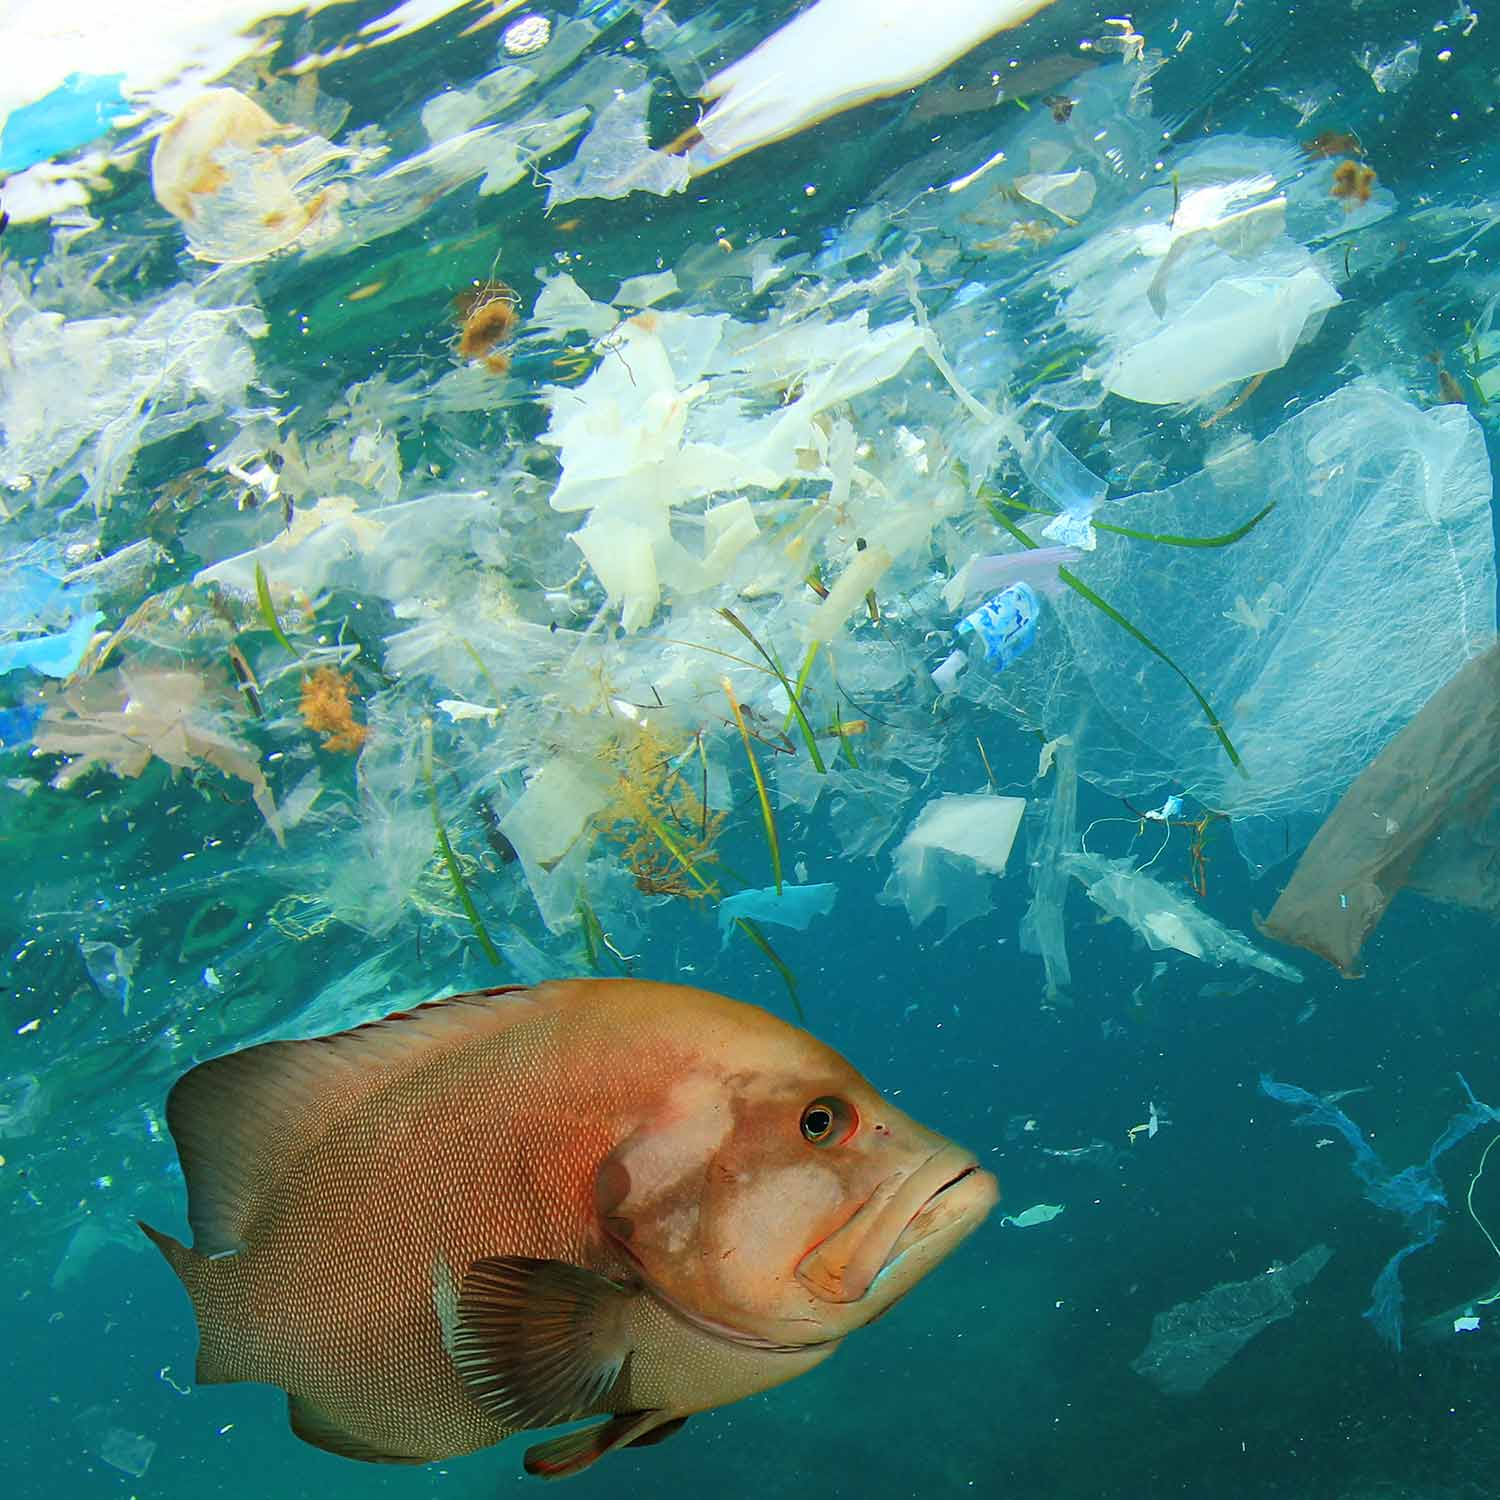 Image of fish swimming with plastic in water